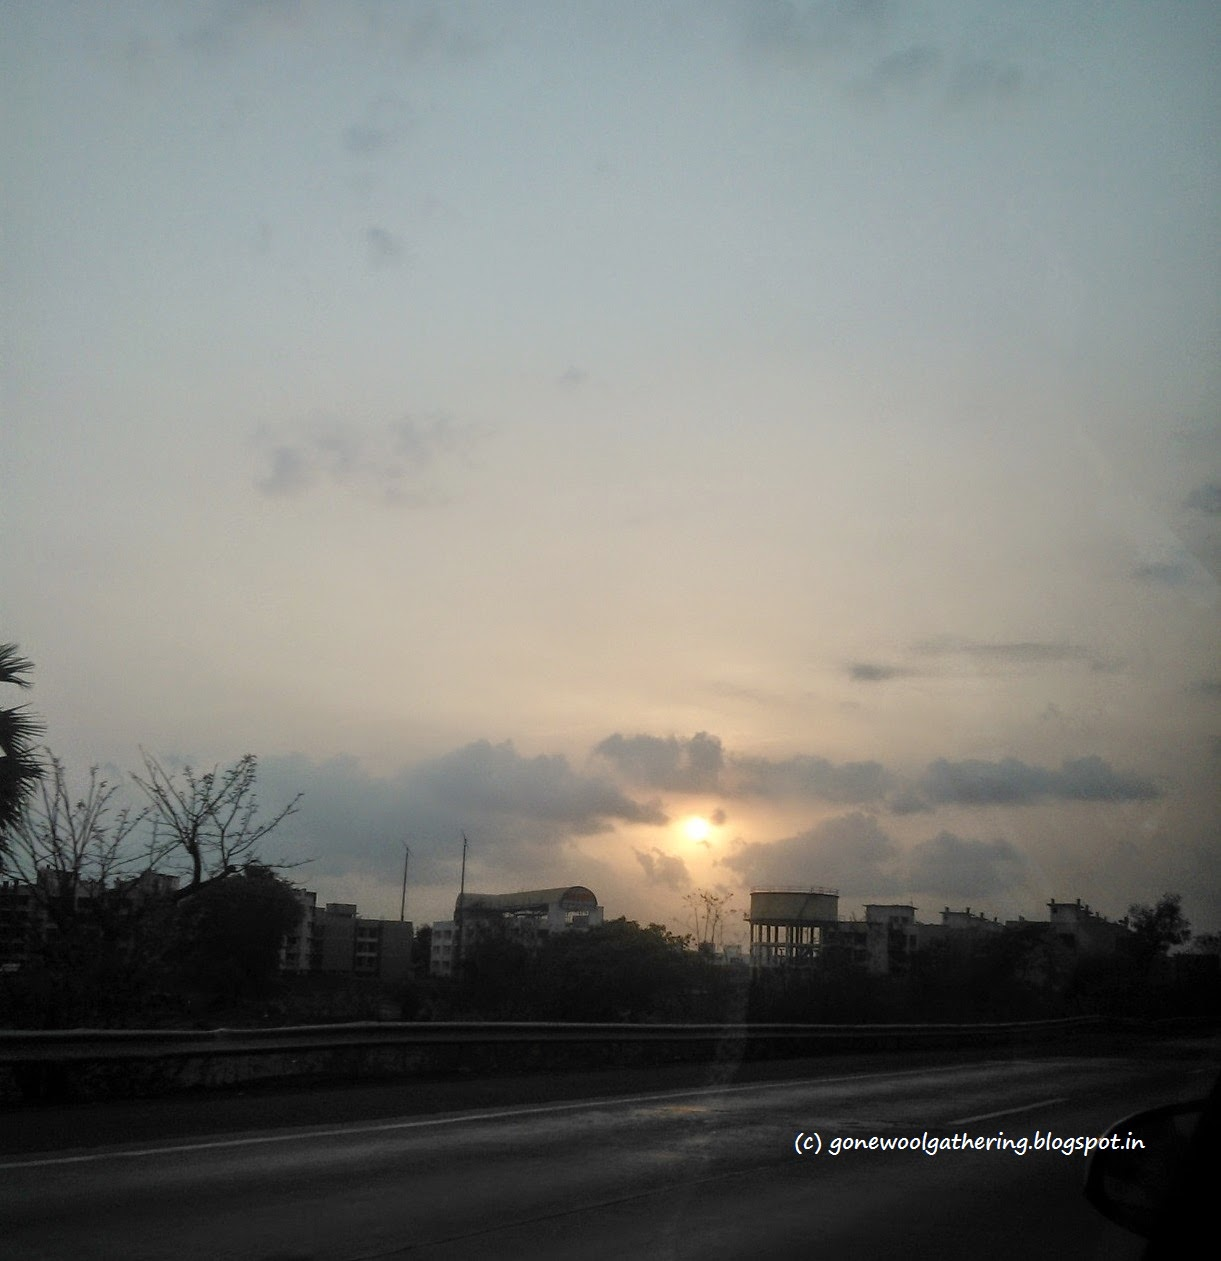 sunset on the expressway gonewoolgathering.blogspot.in